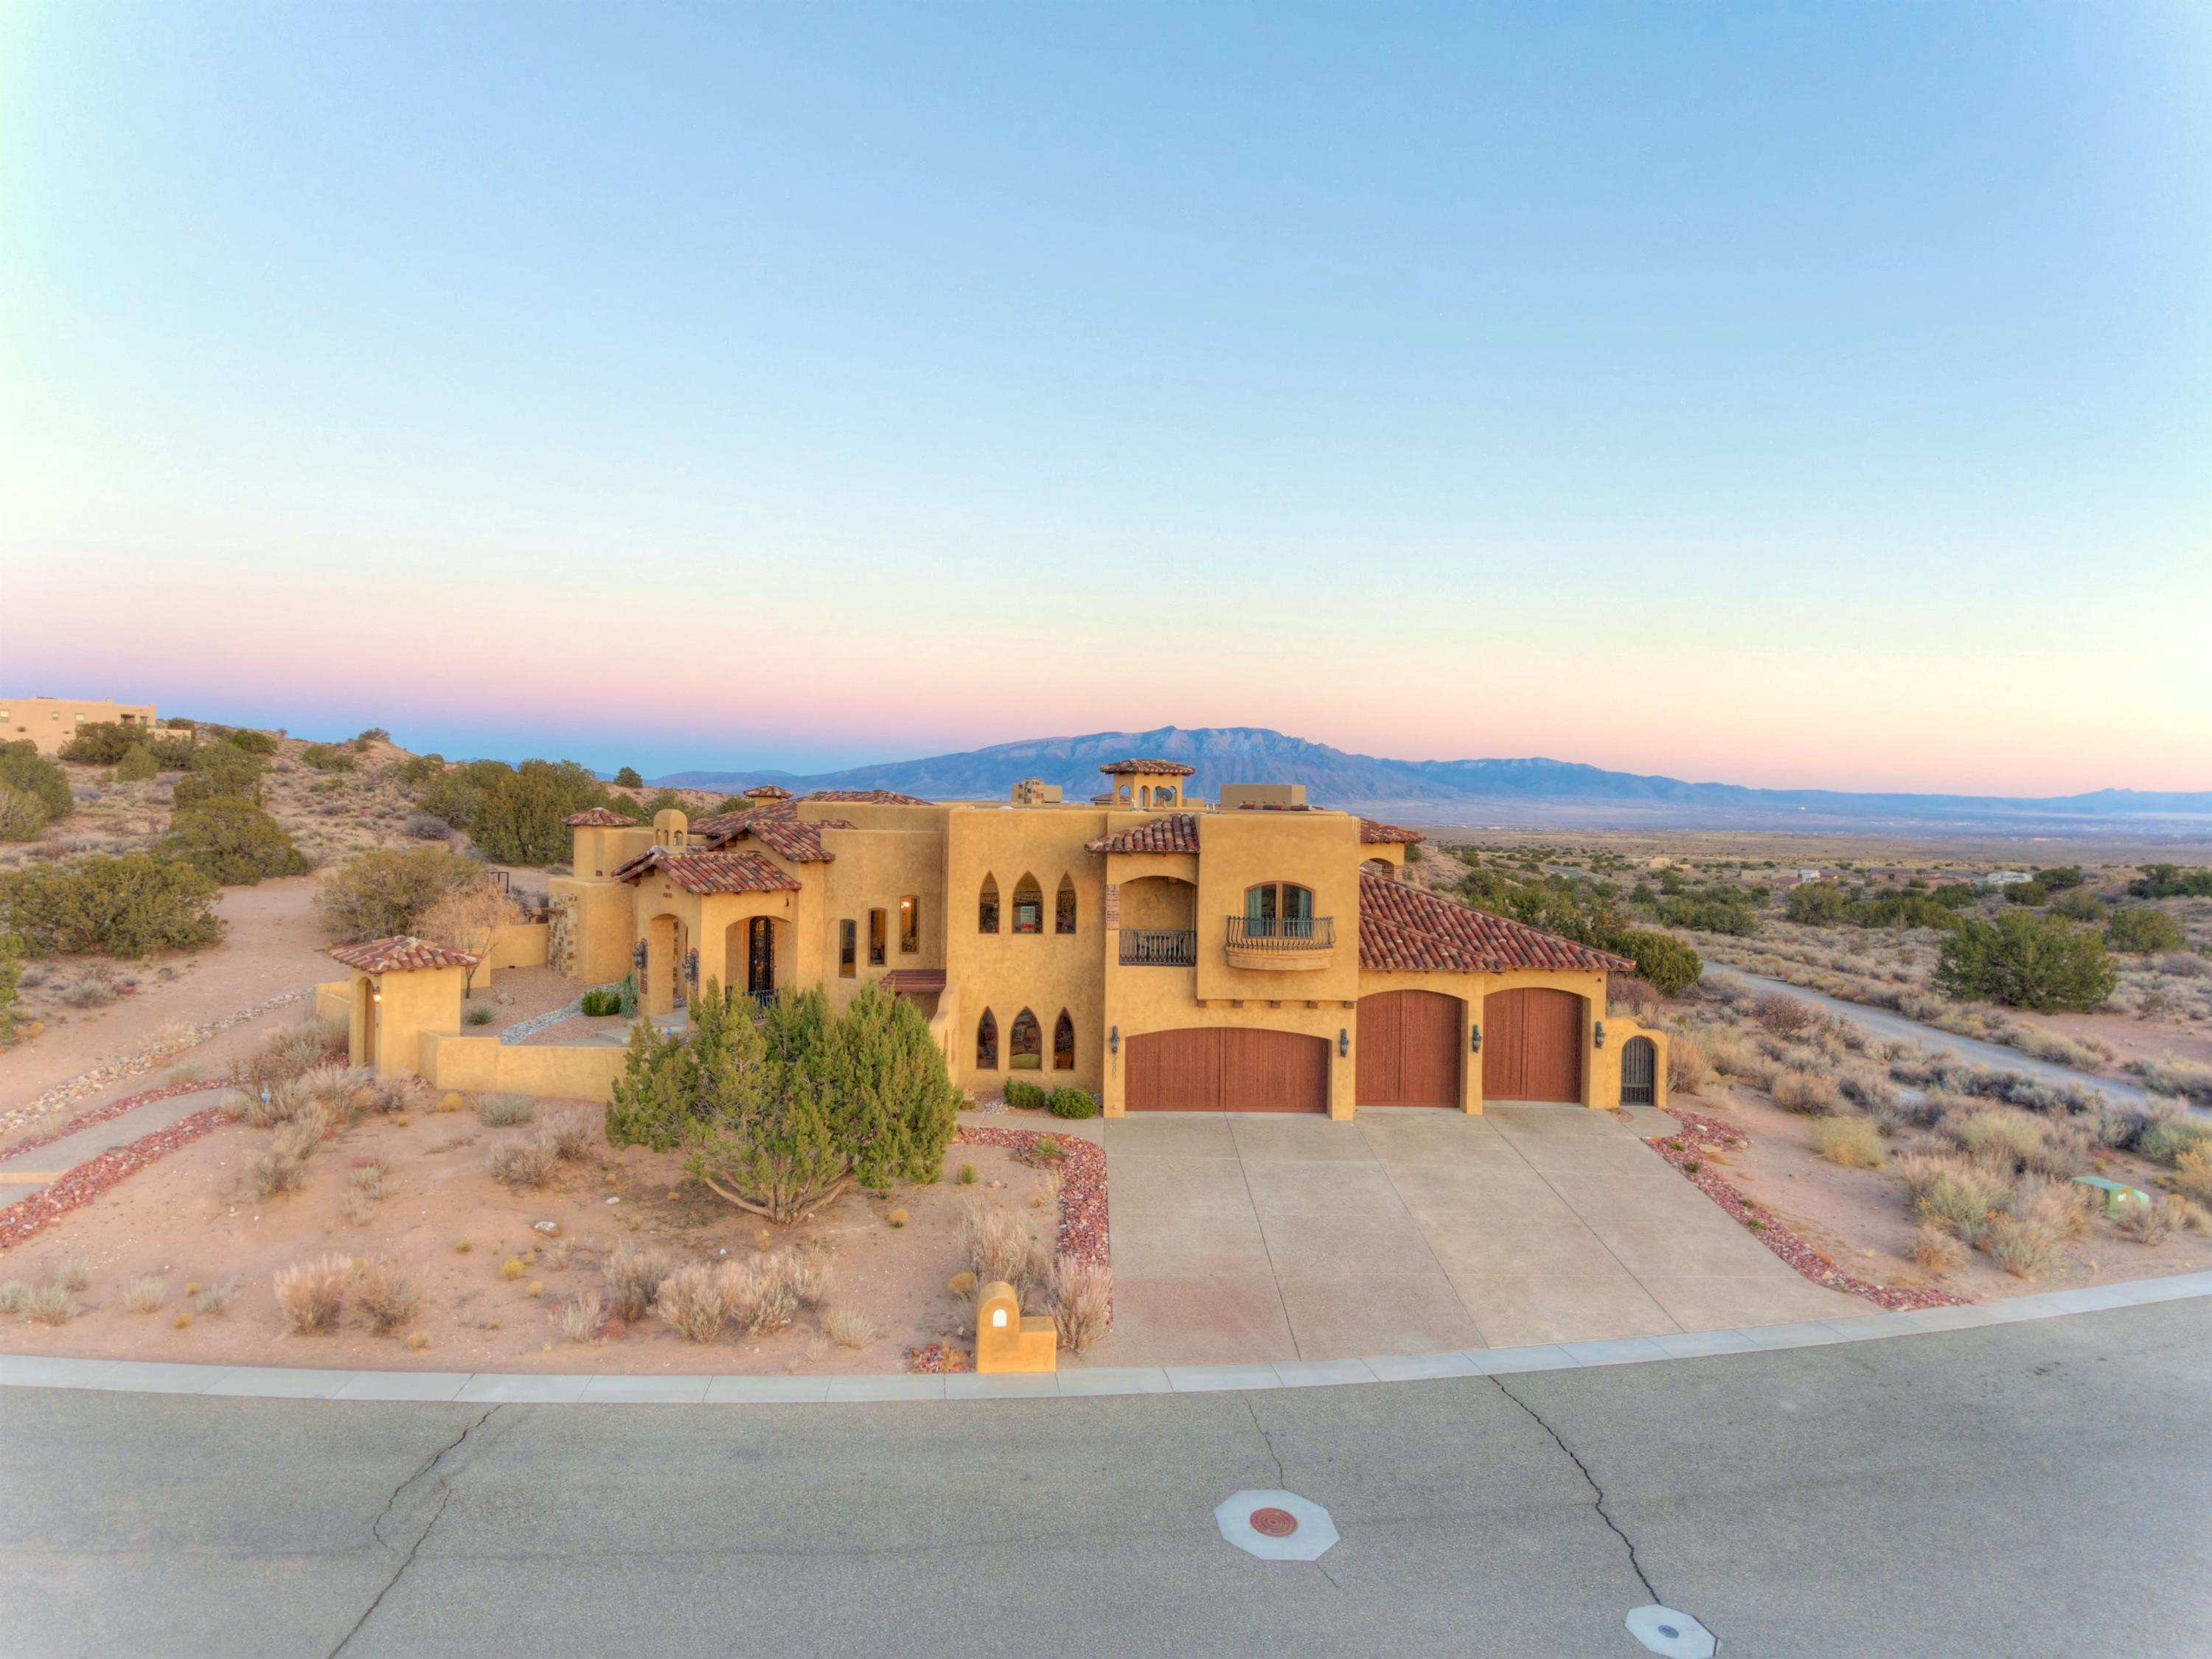 5800 RIDGELINE PLACE NE, RIO RANCHO, NM 87144